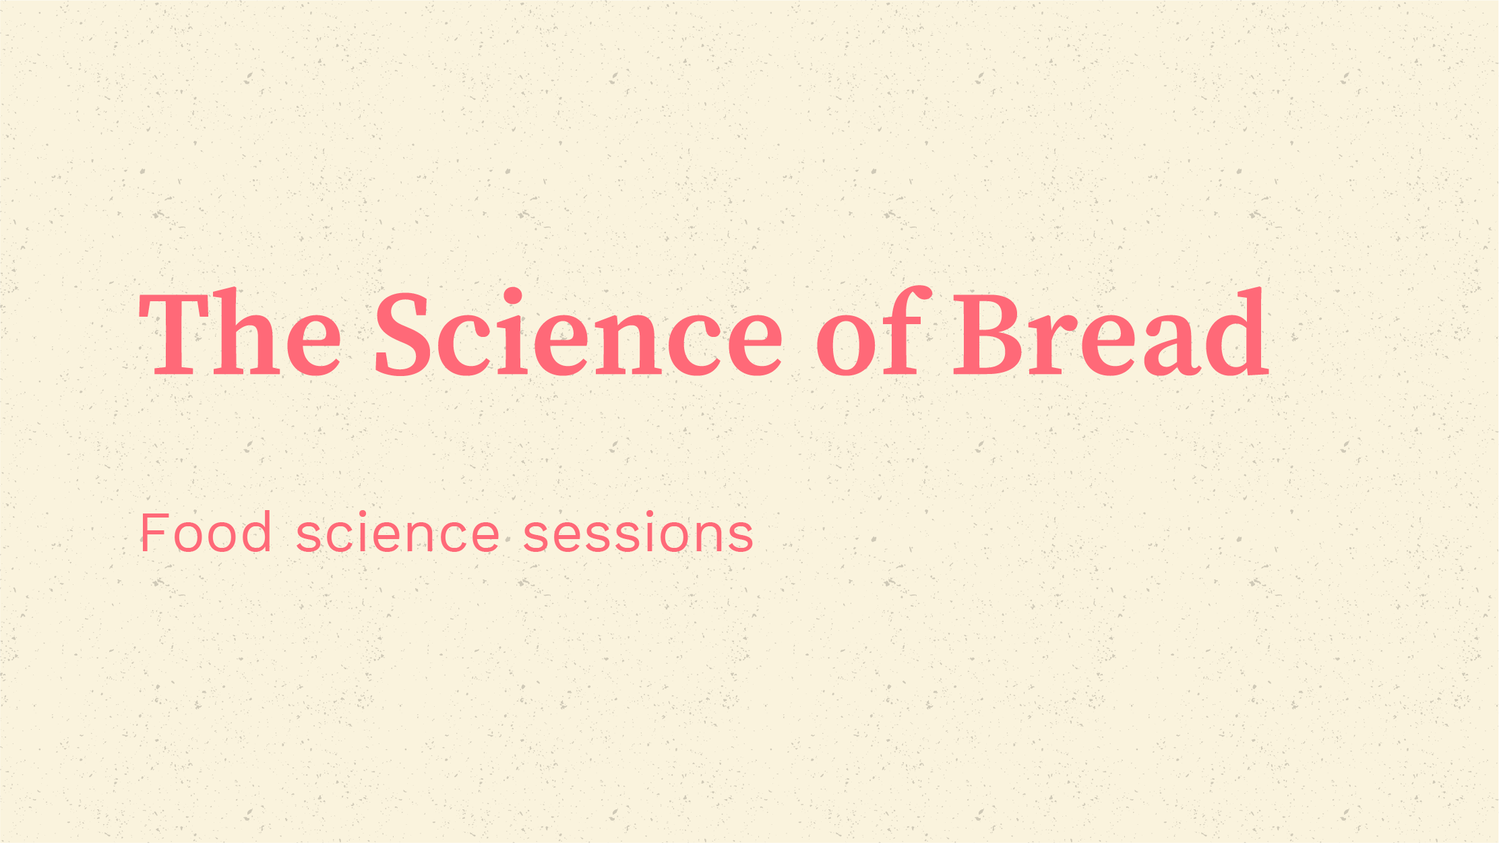 The Science of Bread